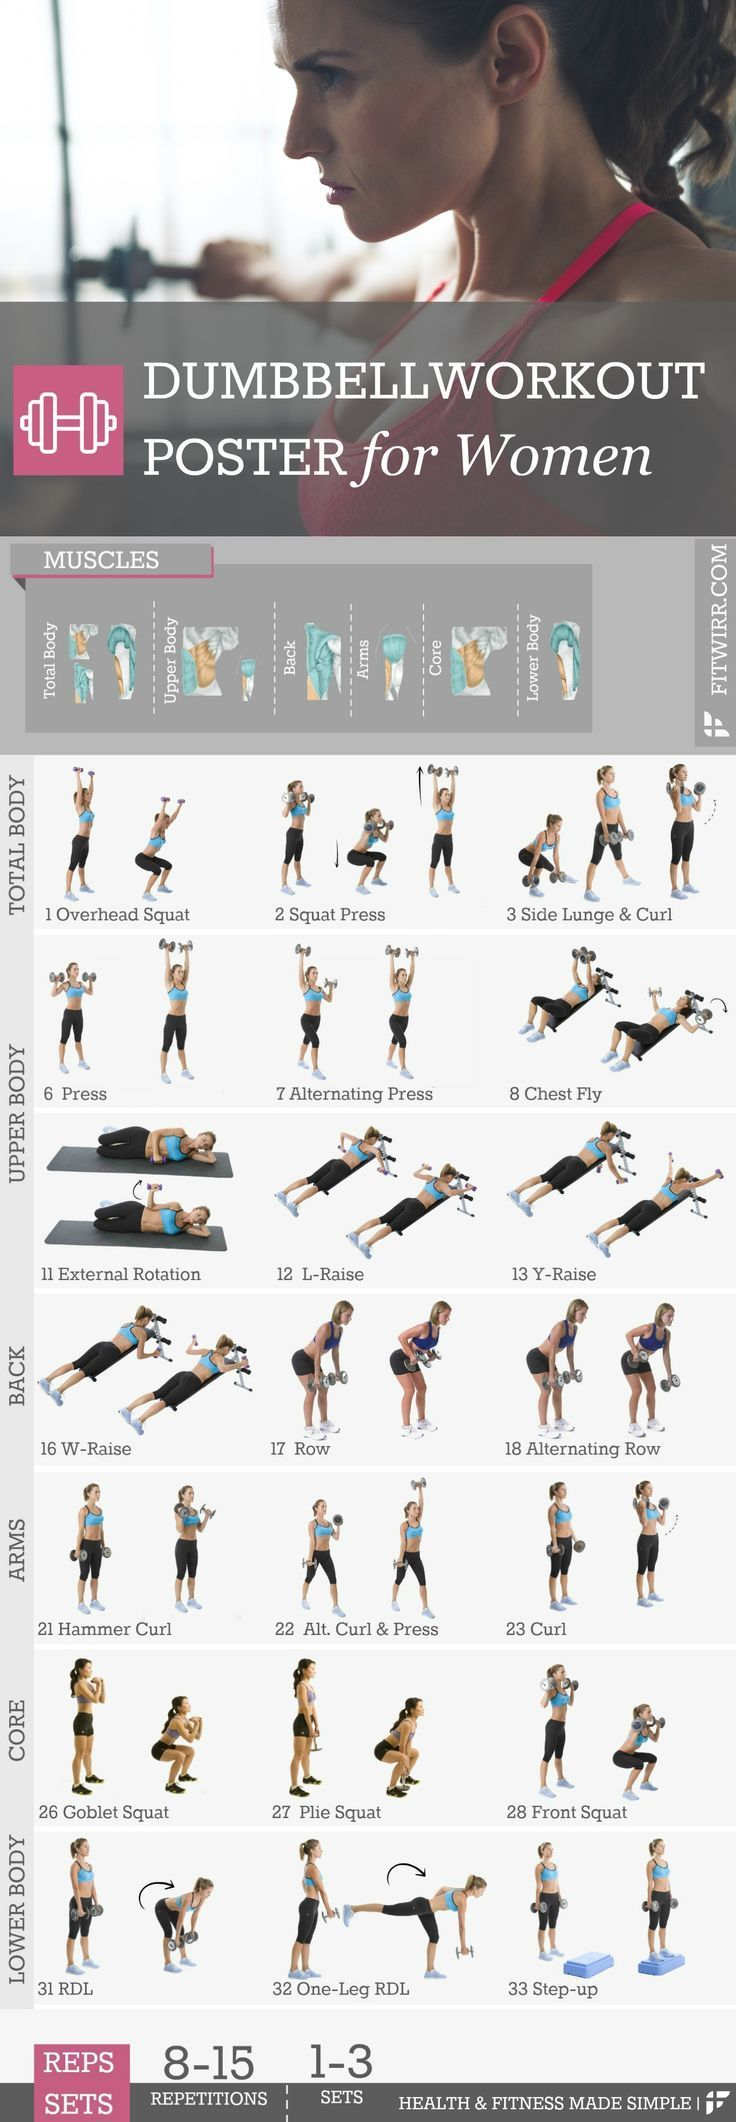 """Are you missing key exercises in your routine? And is that keeping you from reaching your goal? Our """"Dumbbell Workout Poster"""" will show you the absolute best dumbbell exercises to build the body you w http://hiitworkoutprogram.com/category/high-intensity-interval-training"""